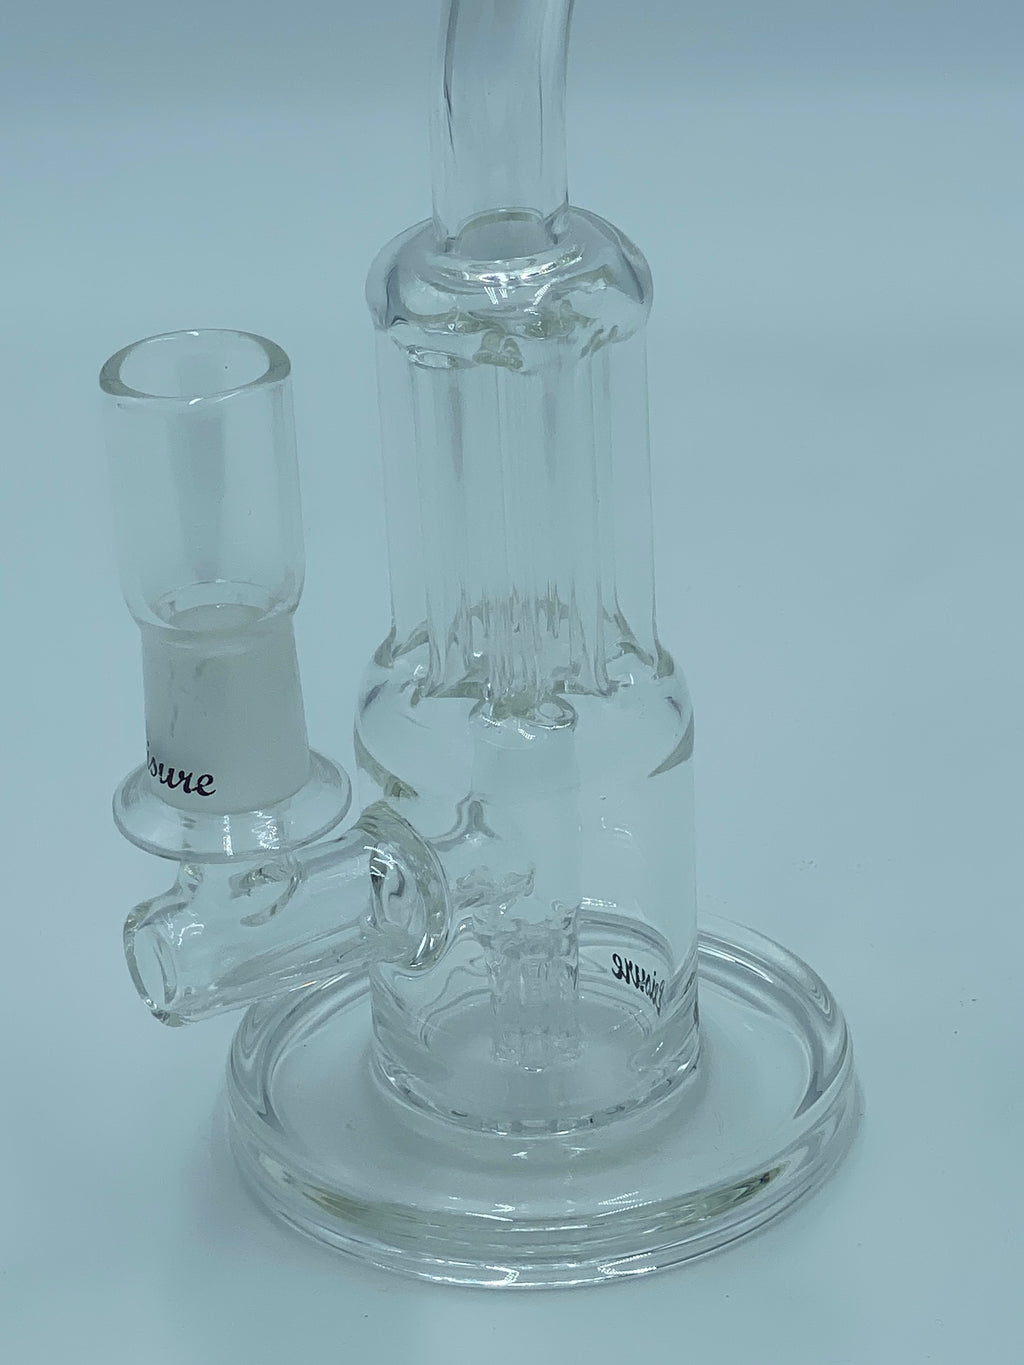 LEISURE GLASS 6 SHOOTER RIG - Smoke Country - Land of the artistic glass blown bongs